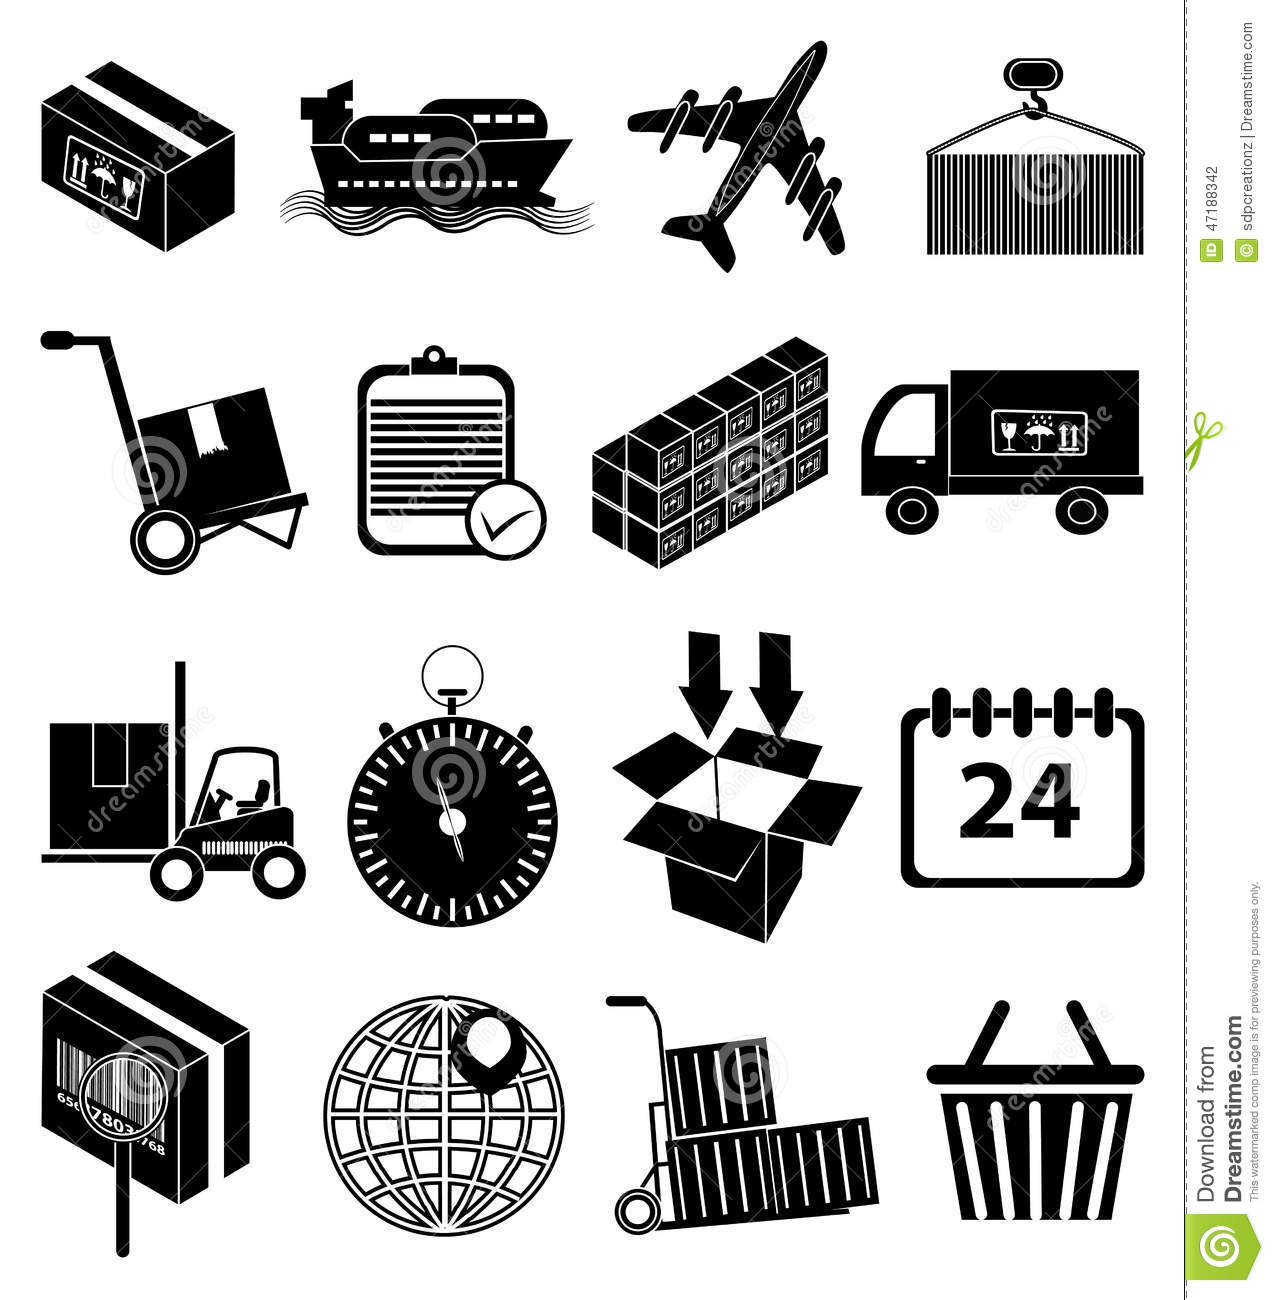 Warehouse Logistics Packaging Delivery Icons Set Stock